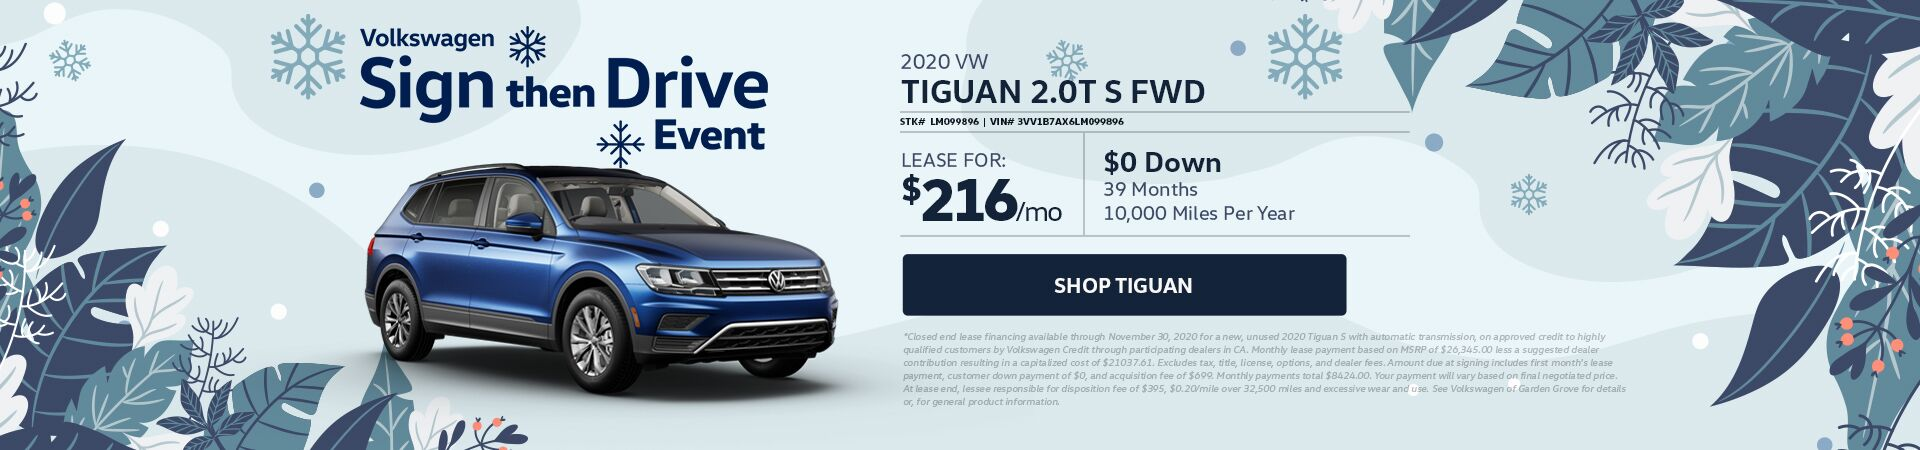 VW Tiguan - updated 11.12.20